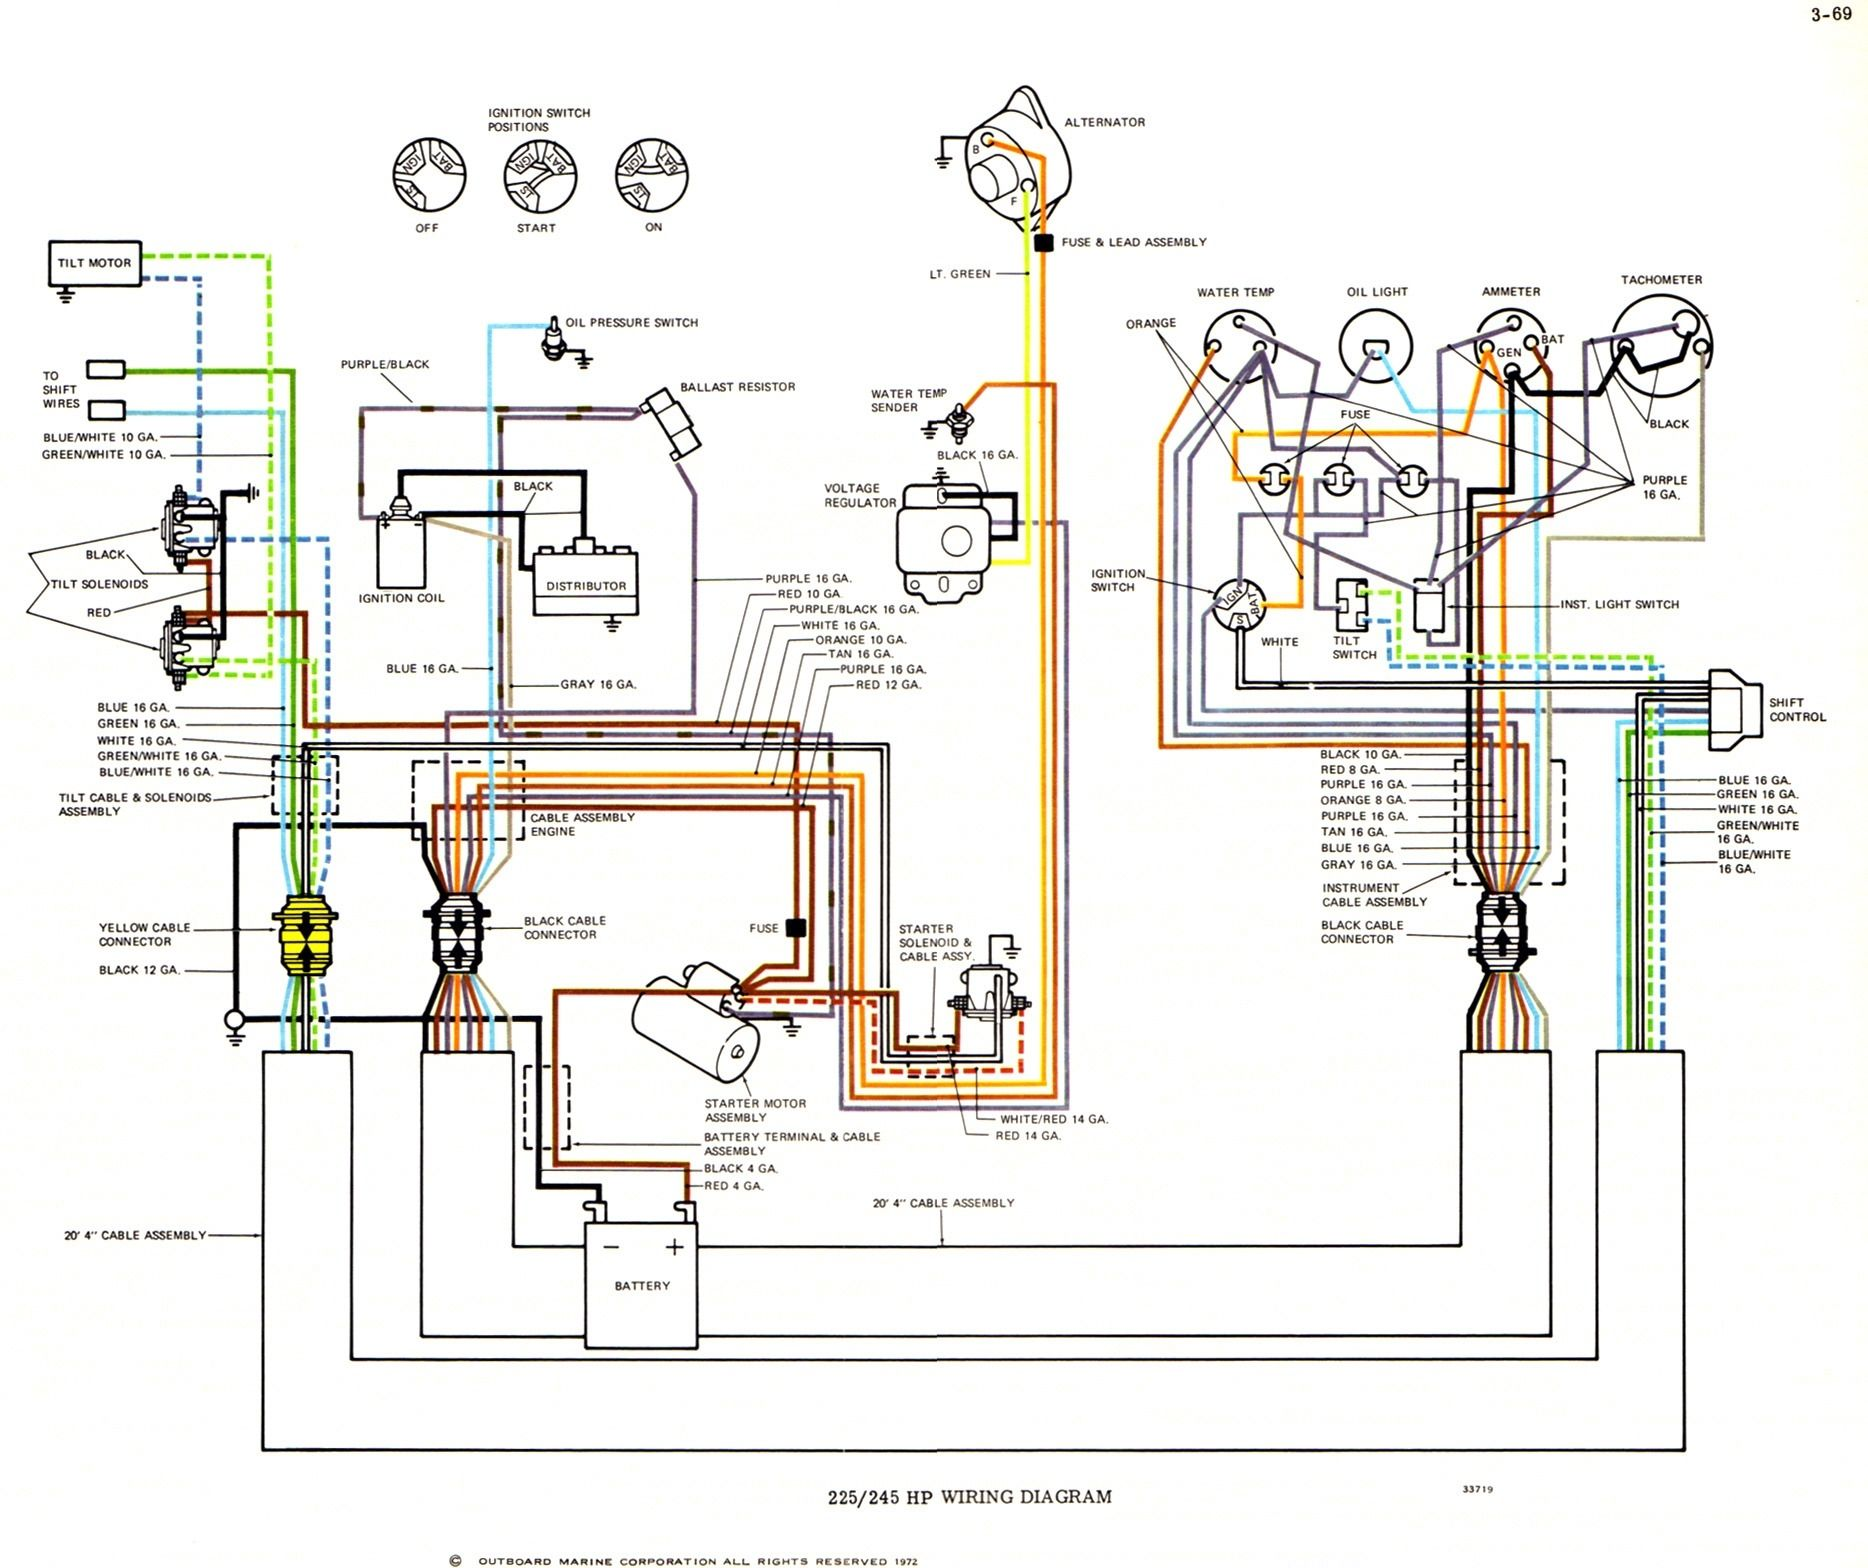 omc wiring diagrams free wiring diagram centre1996 johnson evinrude omc wiring the hull truth boating and [ 1868 x 1568 Pixel ]